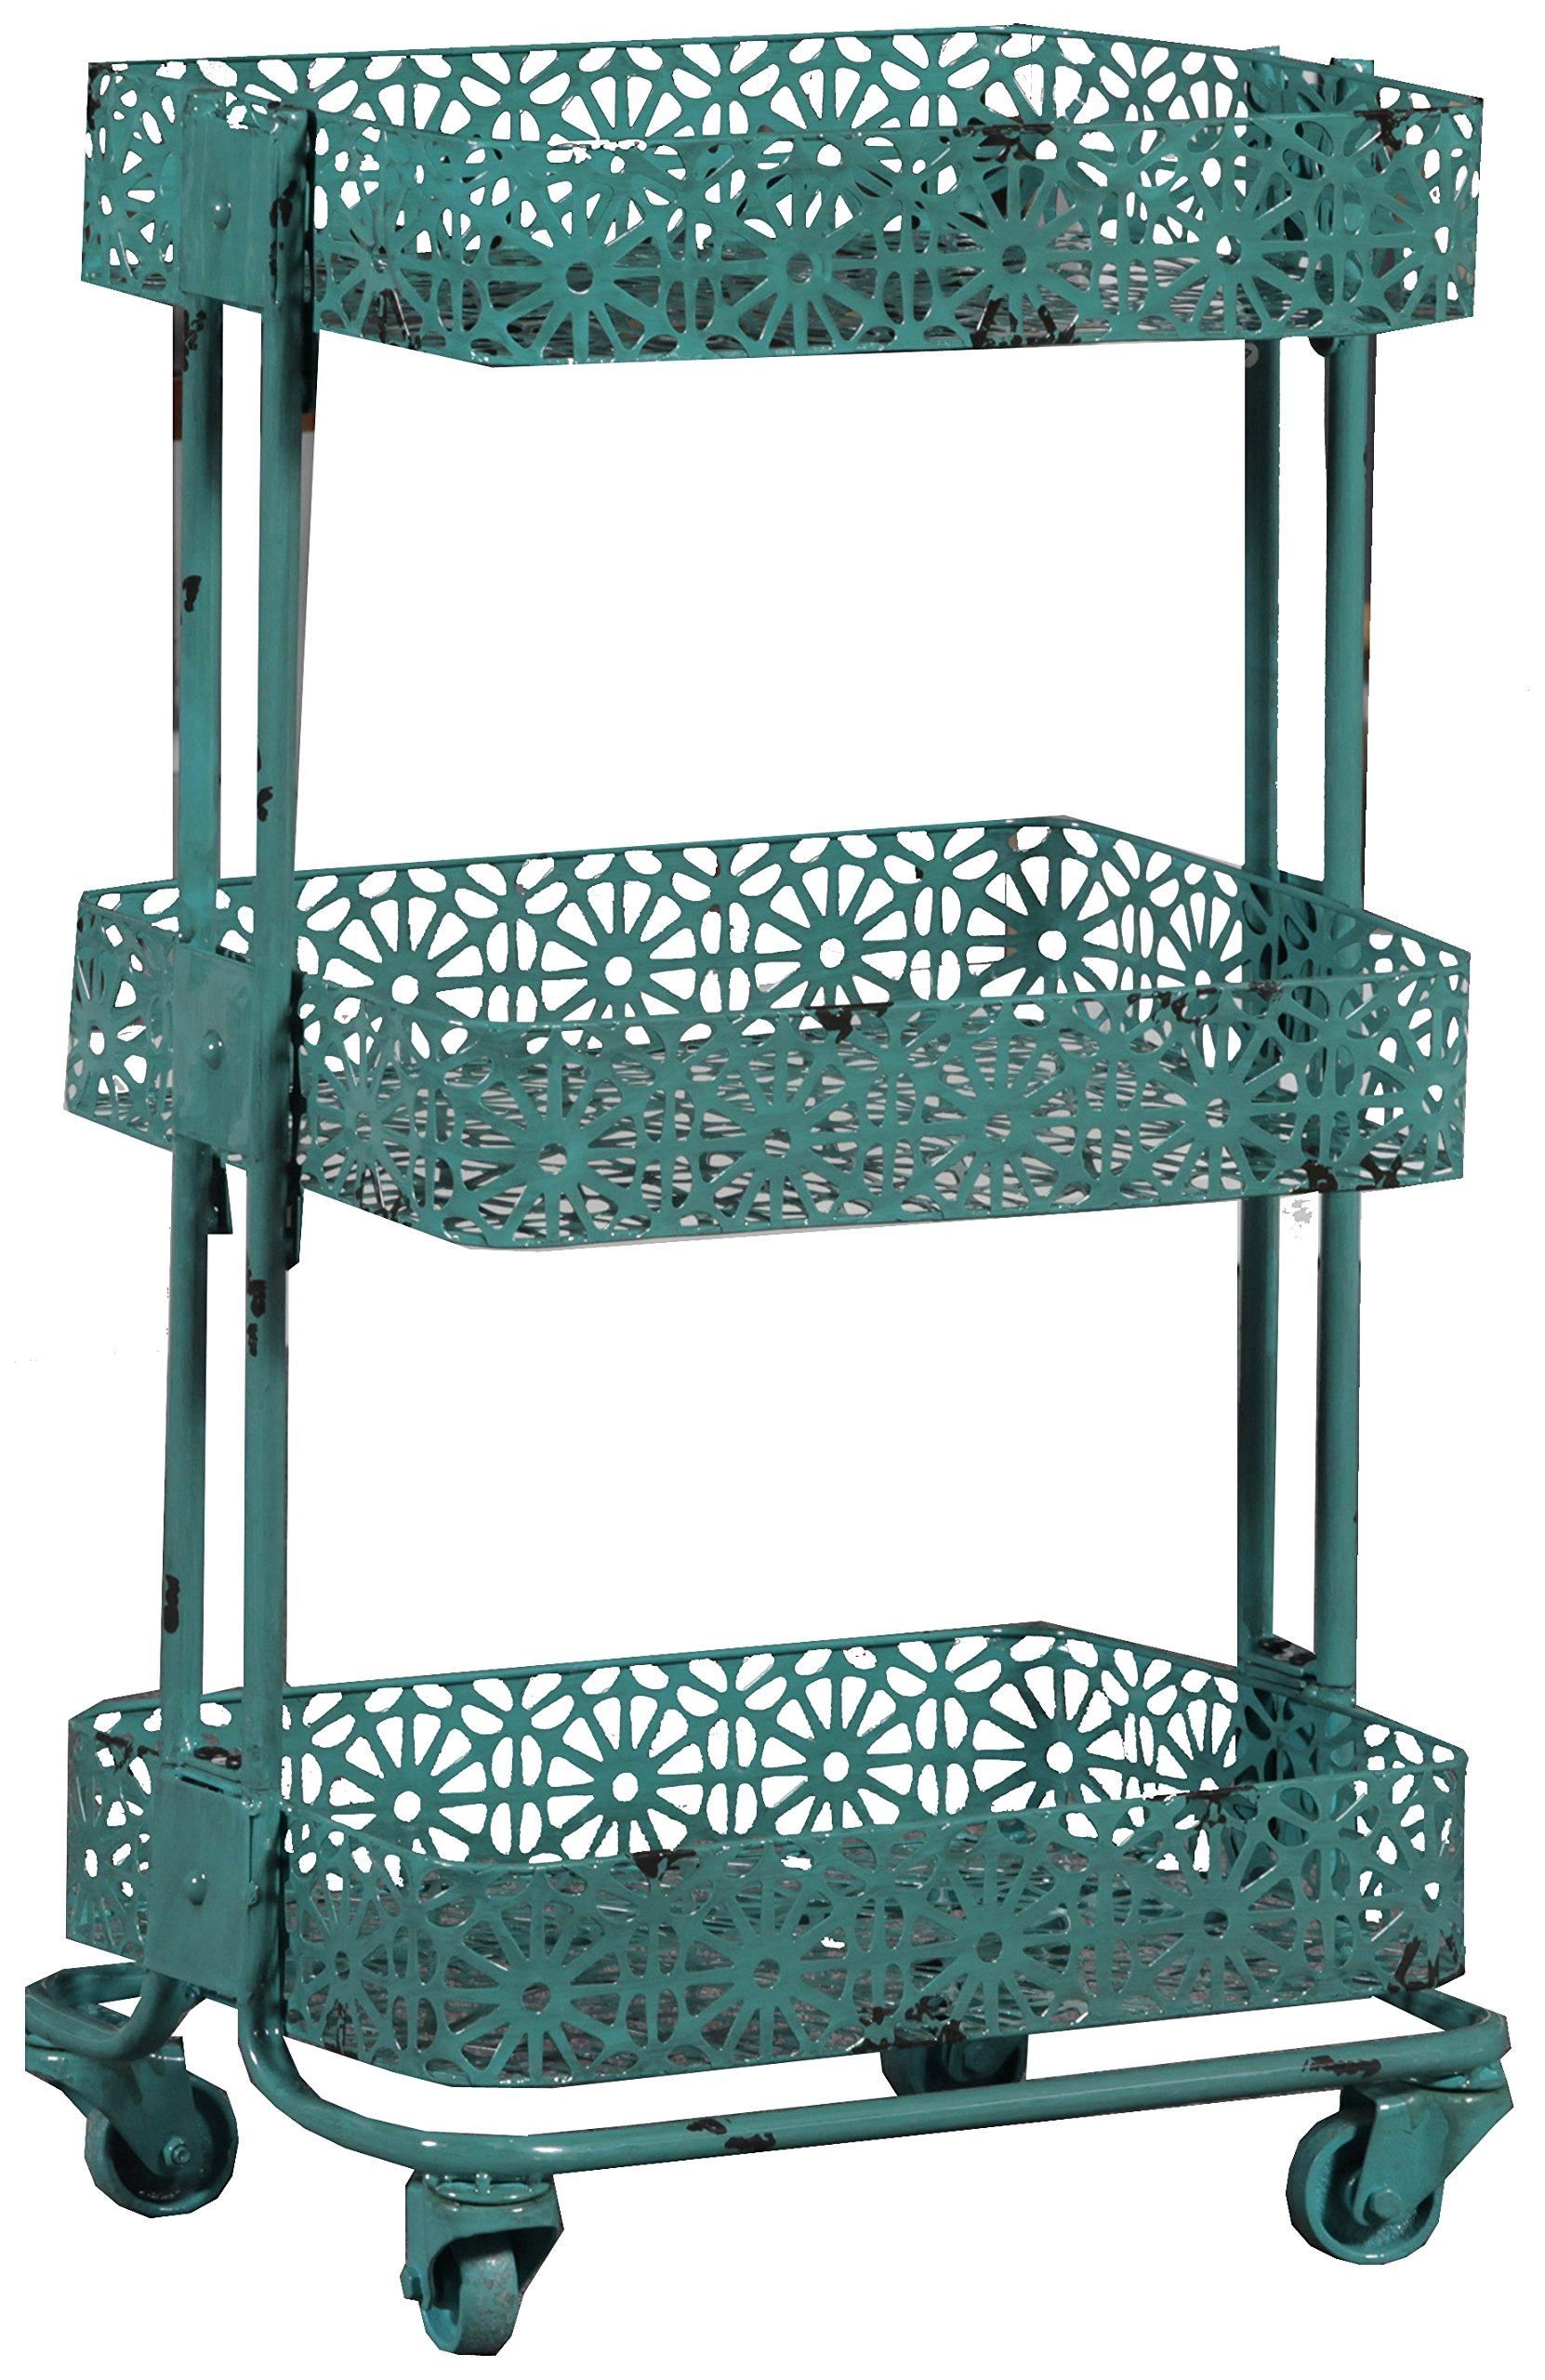 Linon 3-Tier Cart Metal, Turquoise by Linon (Image #1)